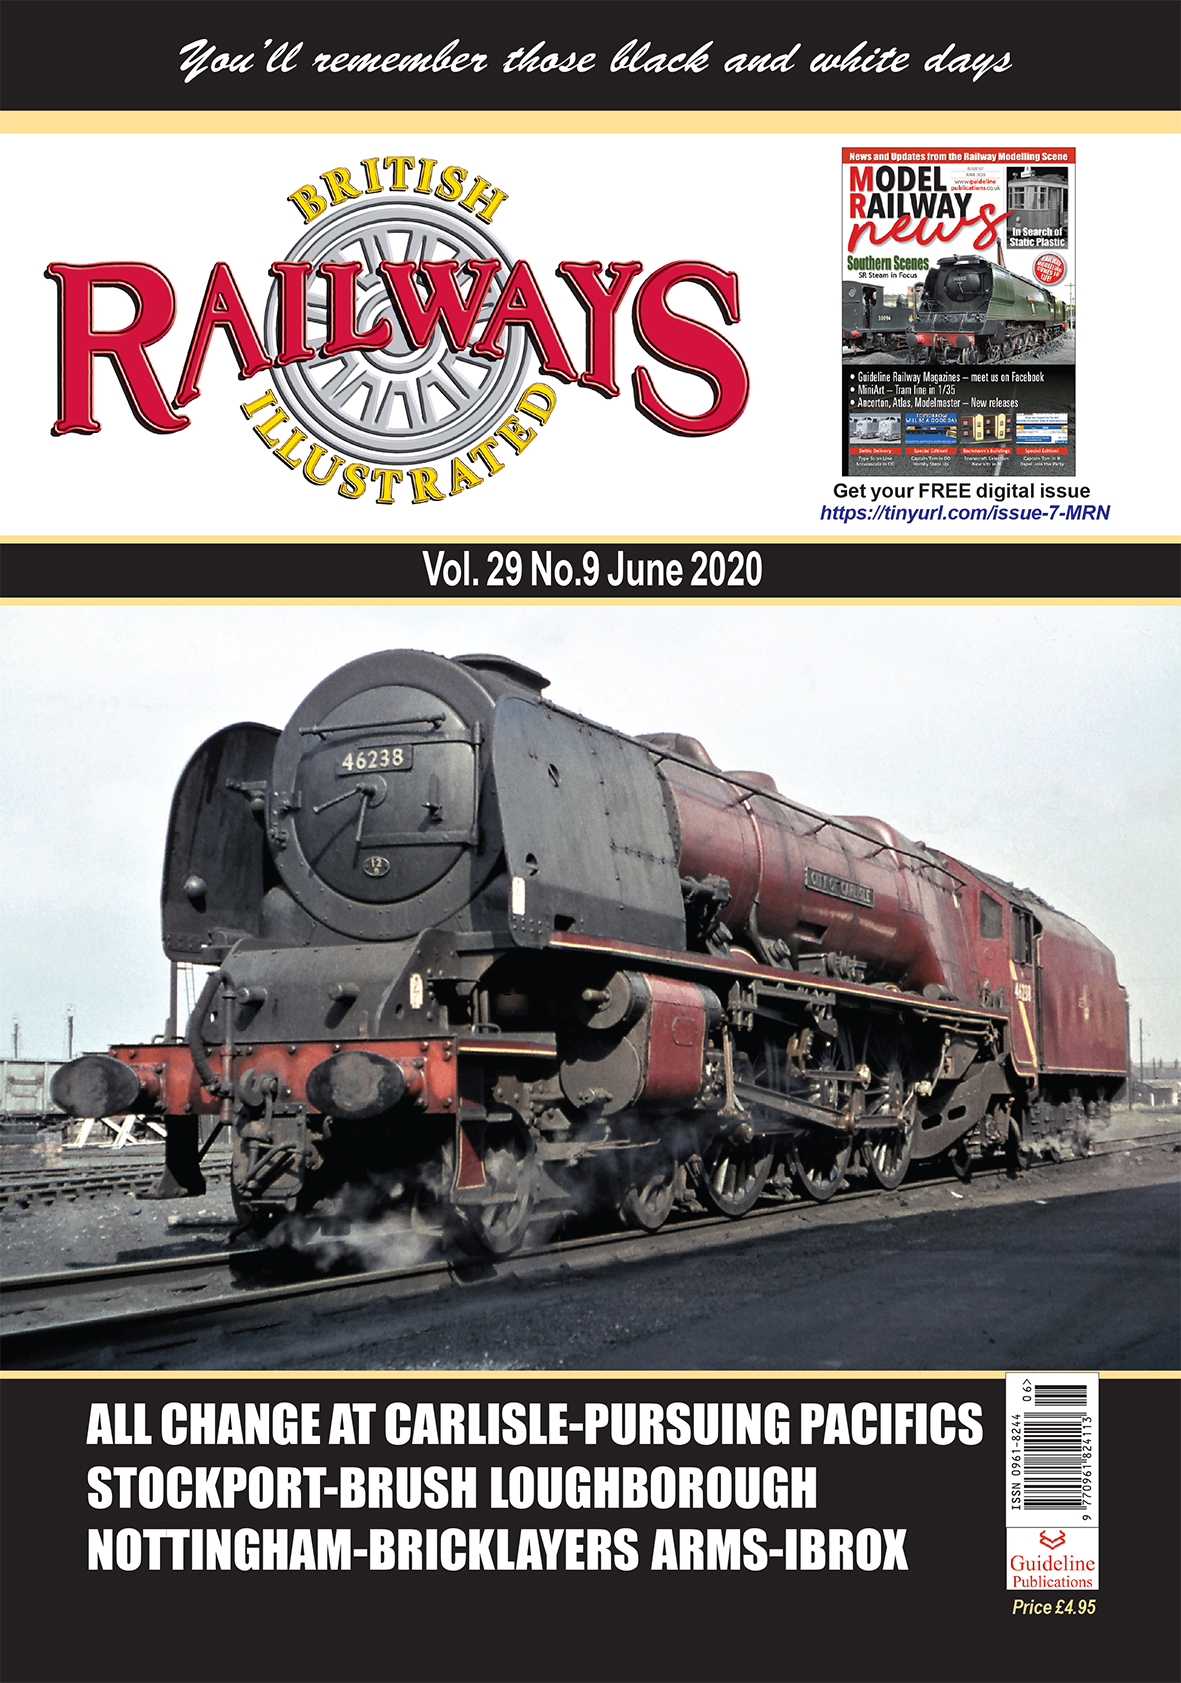 Guideline Publications British Railways Illustrated  vol 29 - 09 June 2020